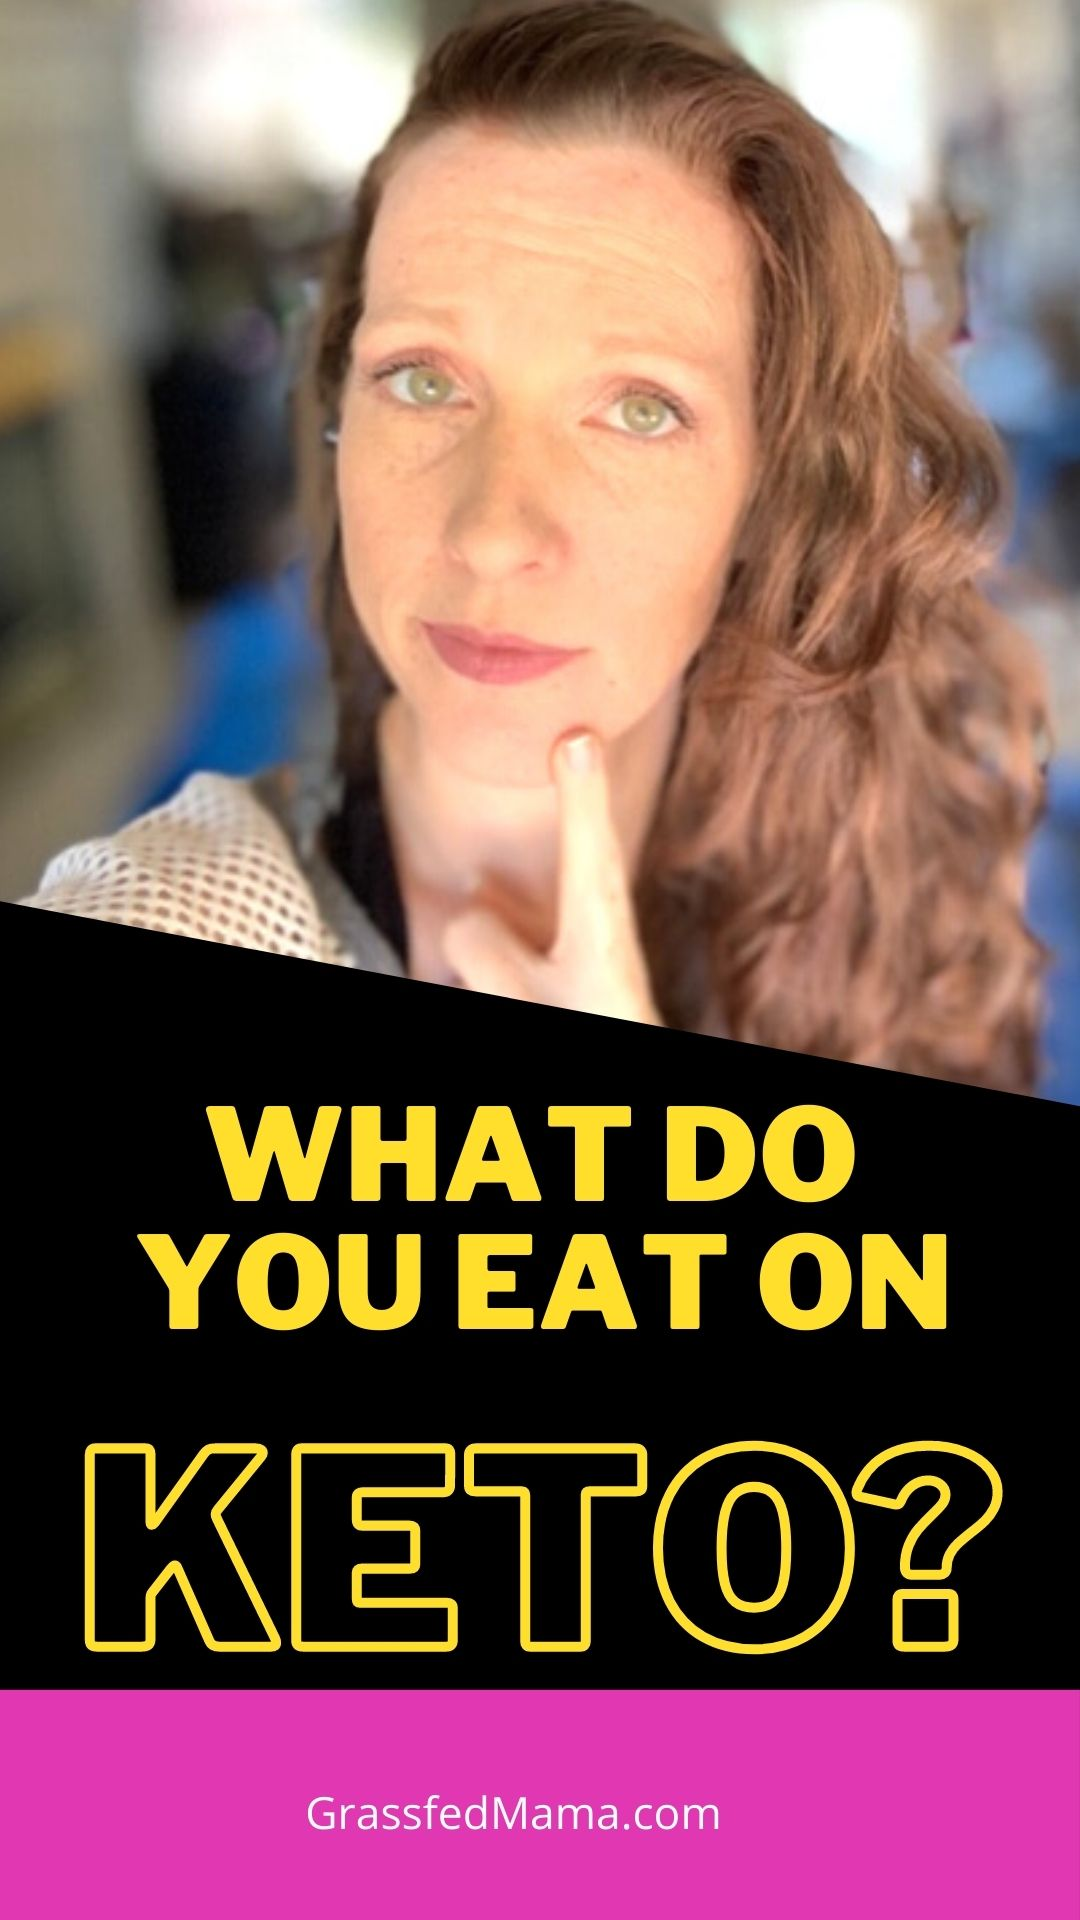 What do you eat on Keto